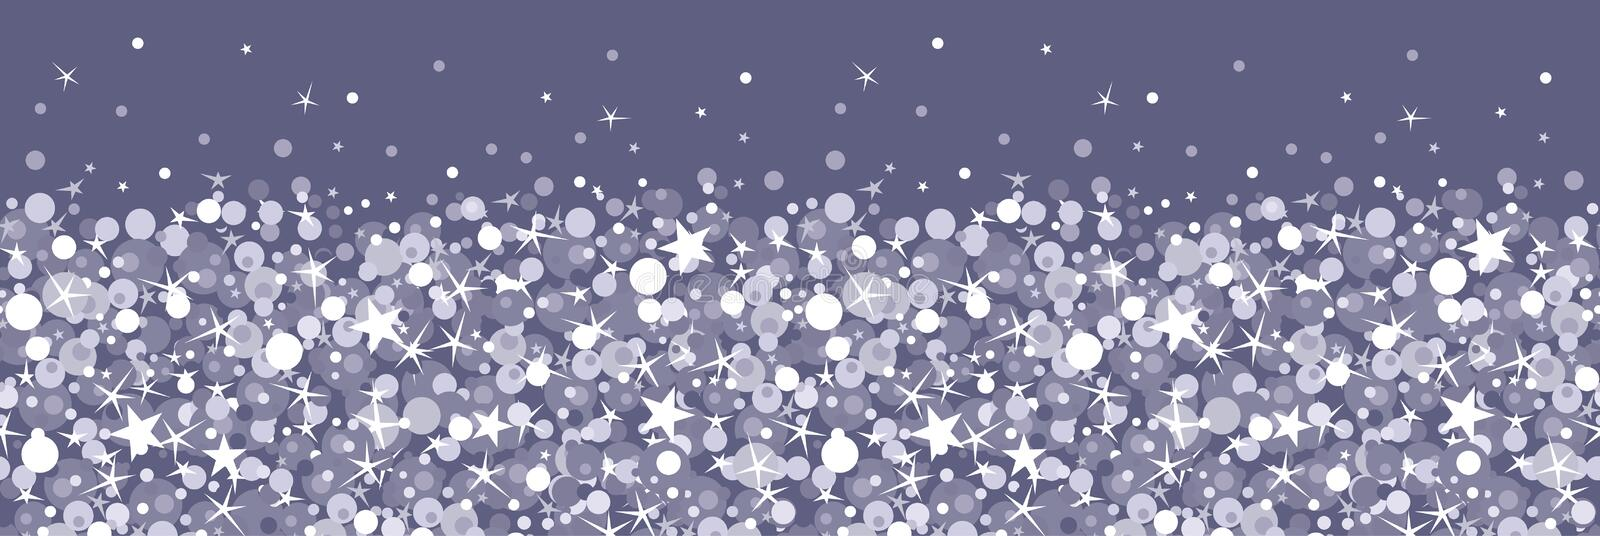 Download Silver Sparkles Horizontal Seamless Pattern Royalty Free Stock Images - Image: 31416889